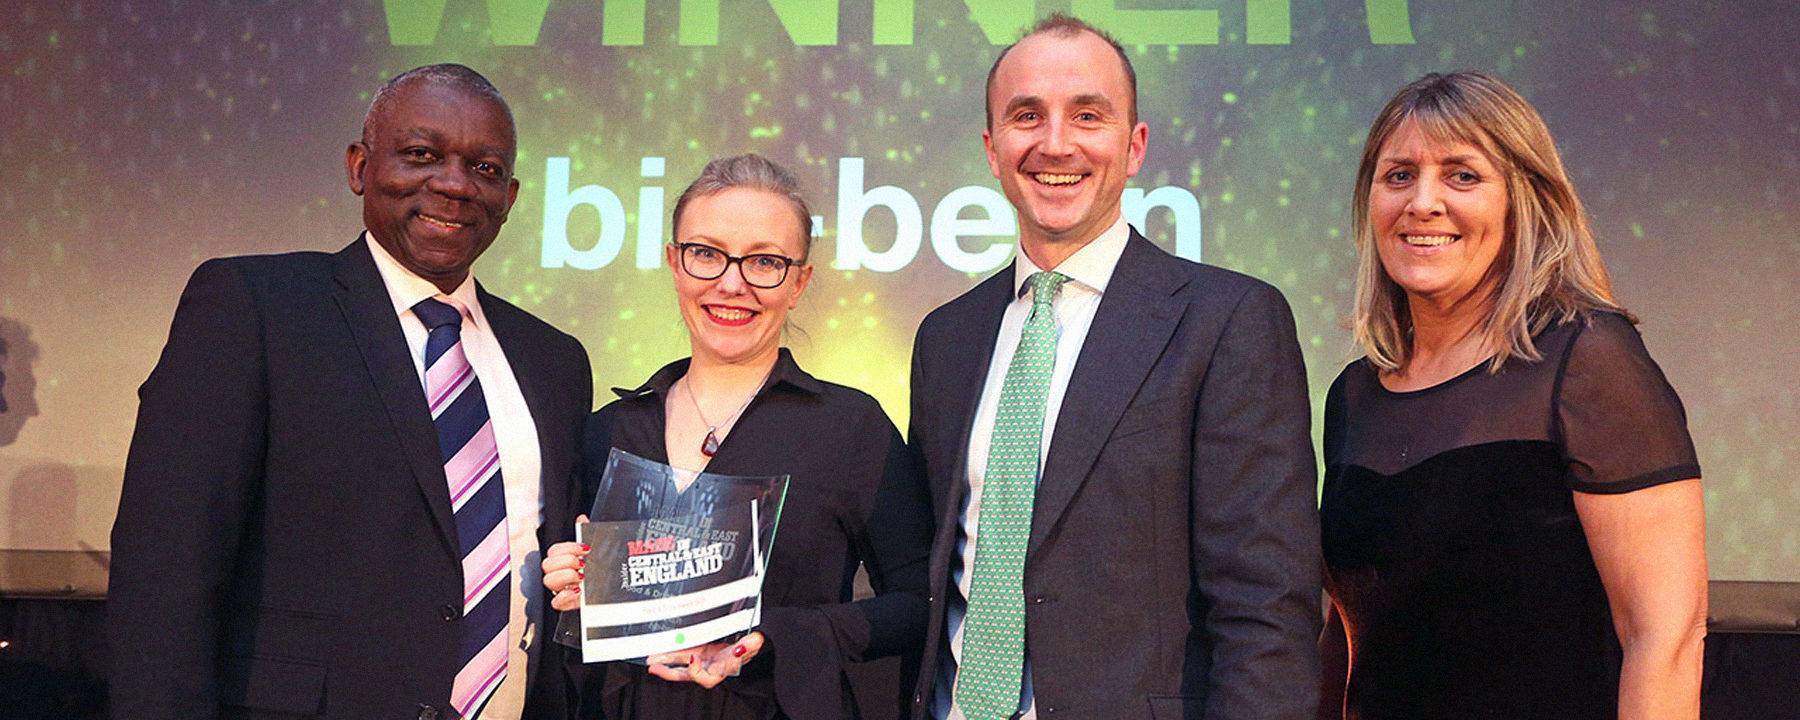 bio-bean wins award